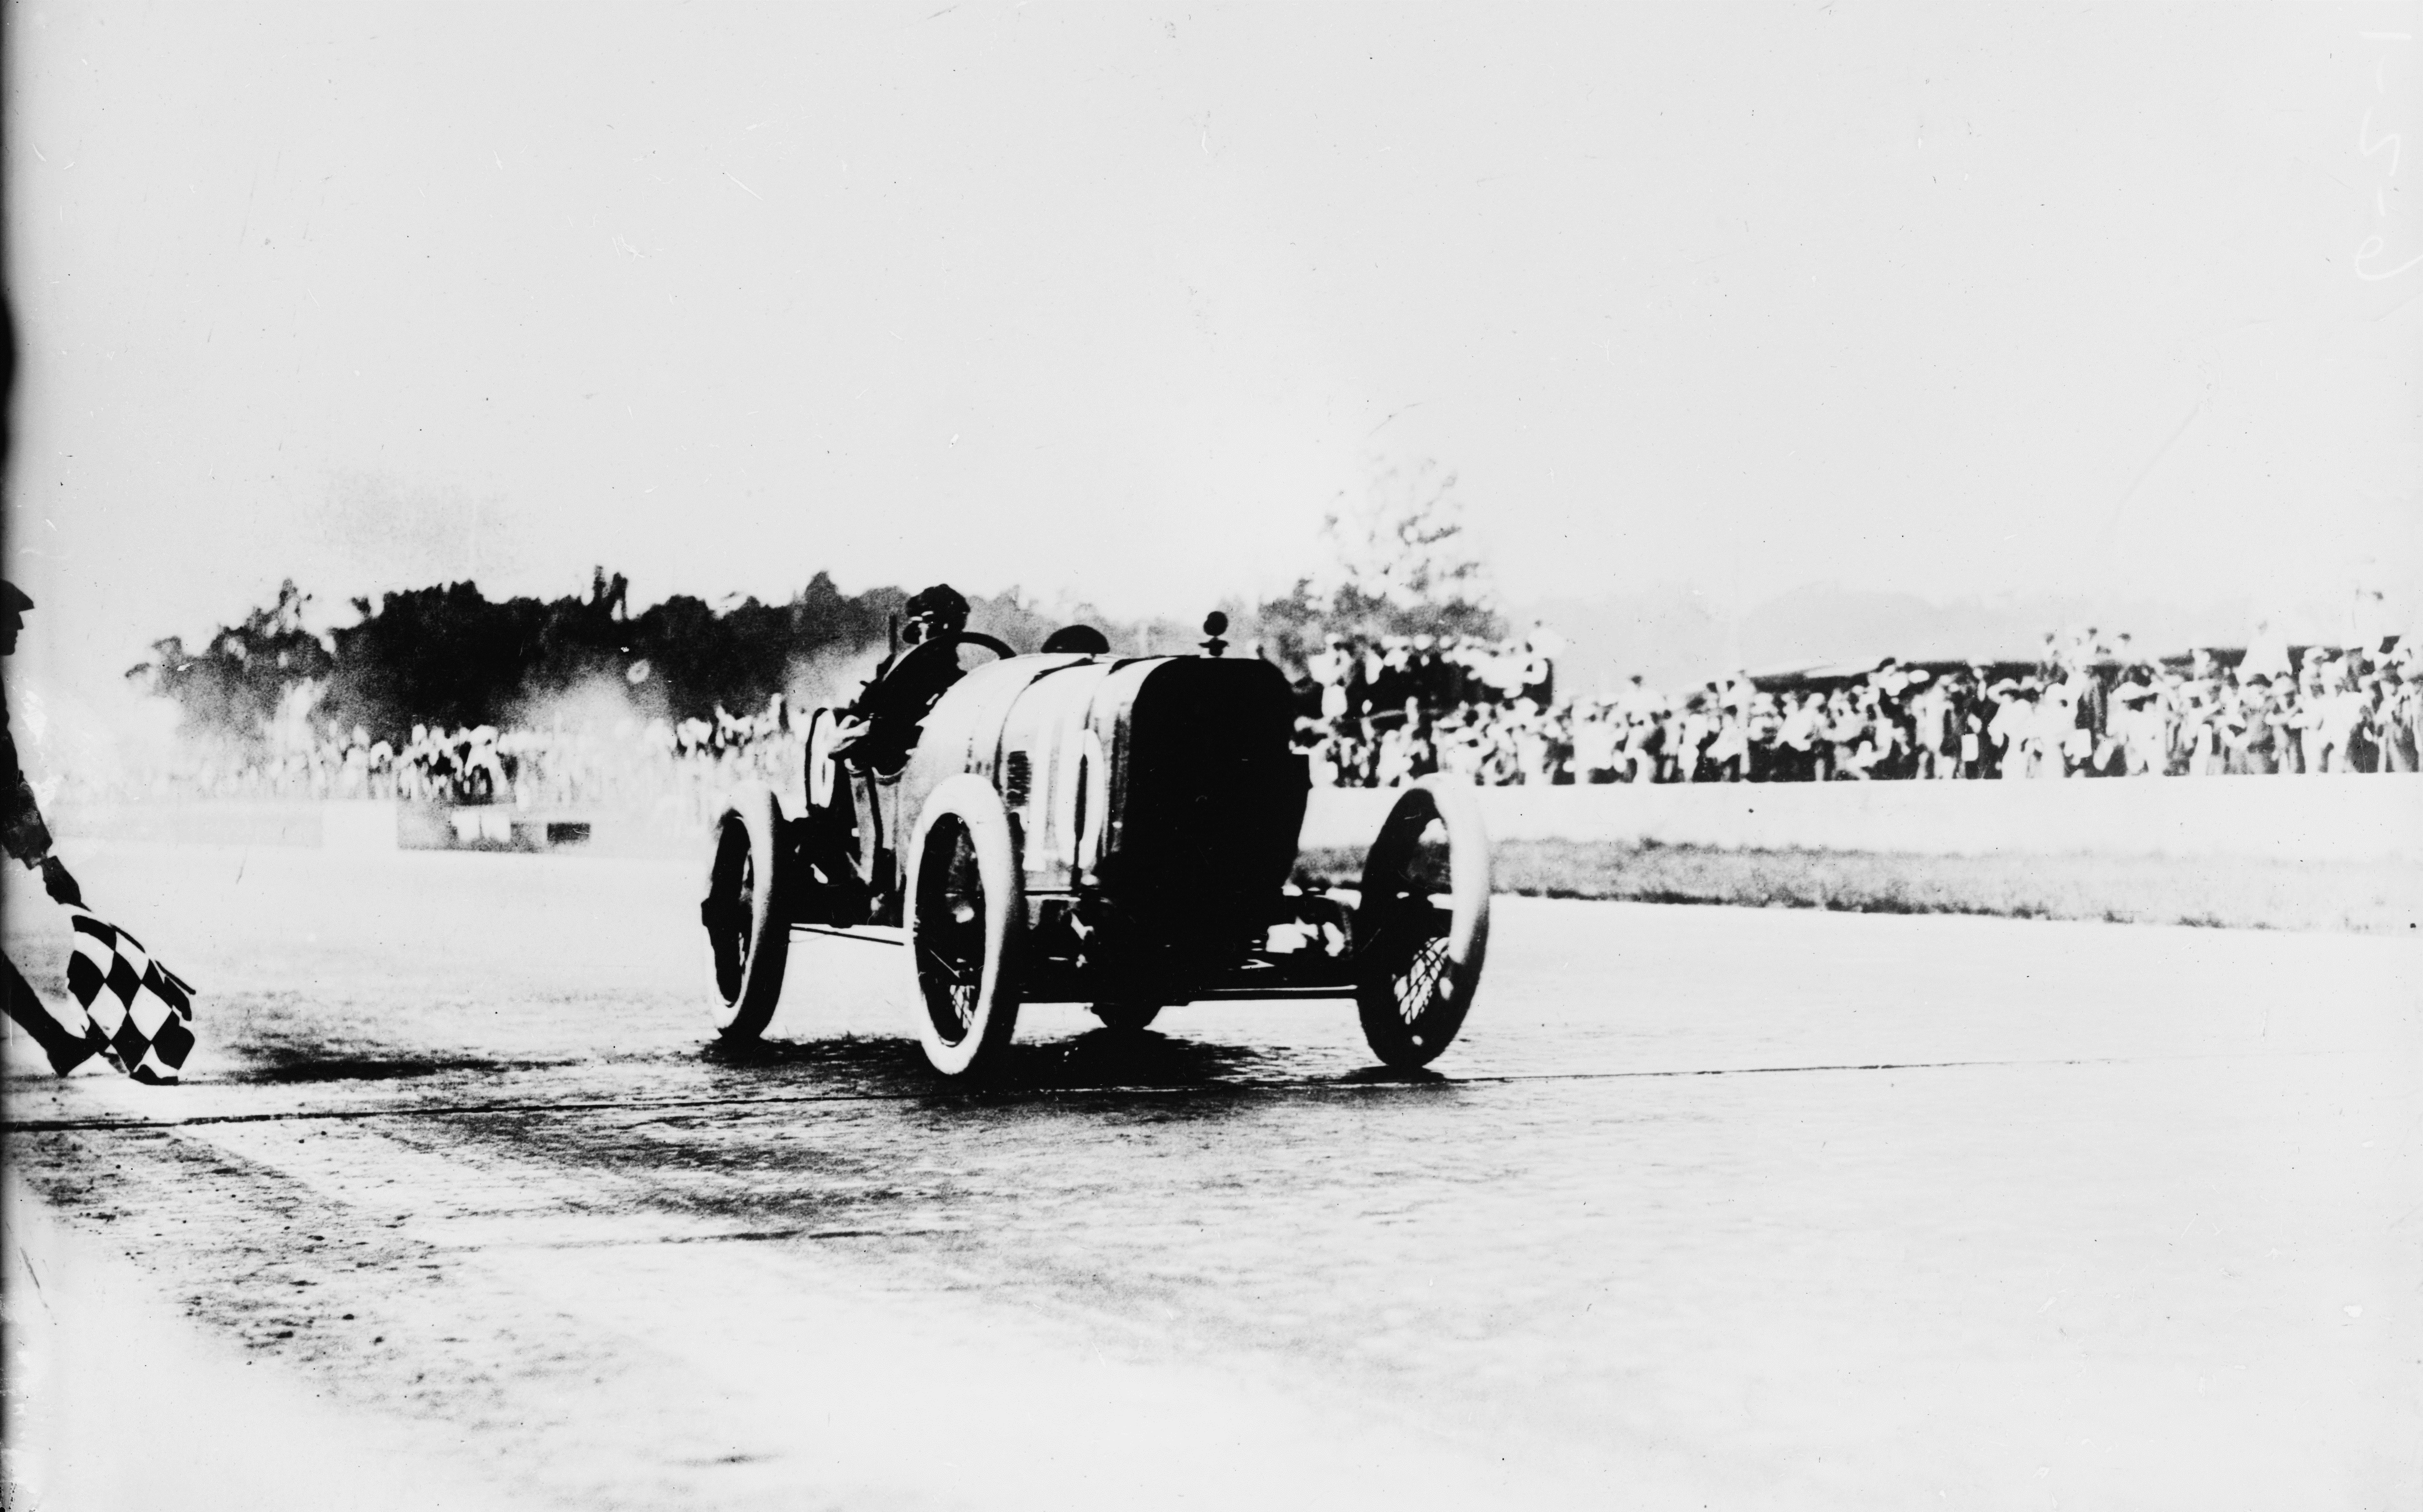 Peugeot wins the 1913 Indianapolis 500